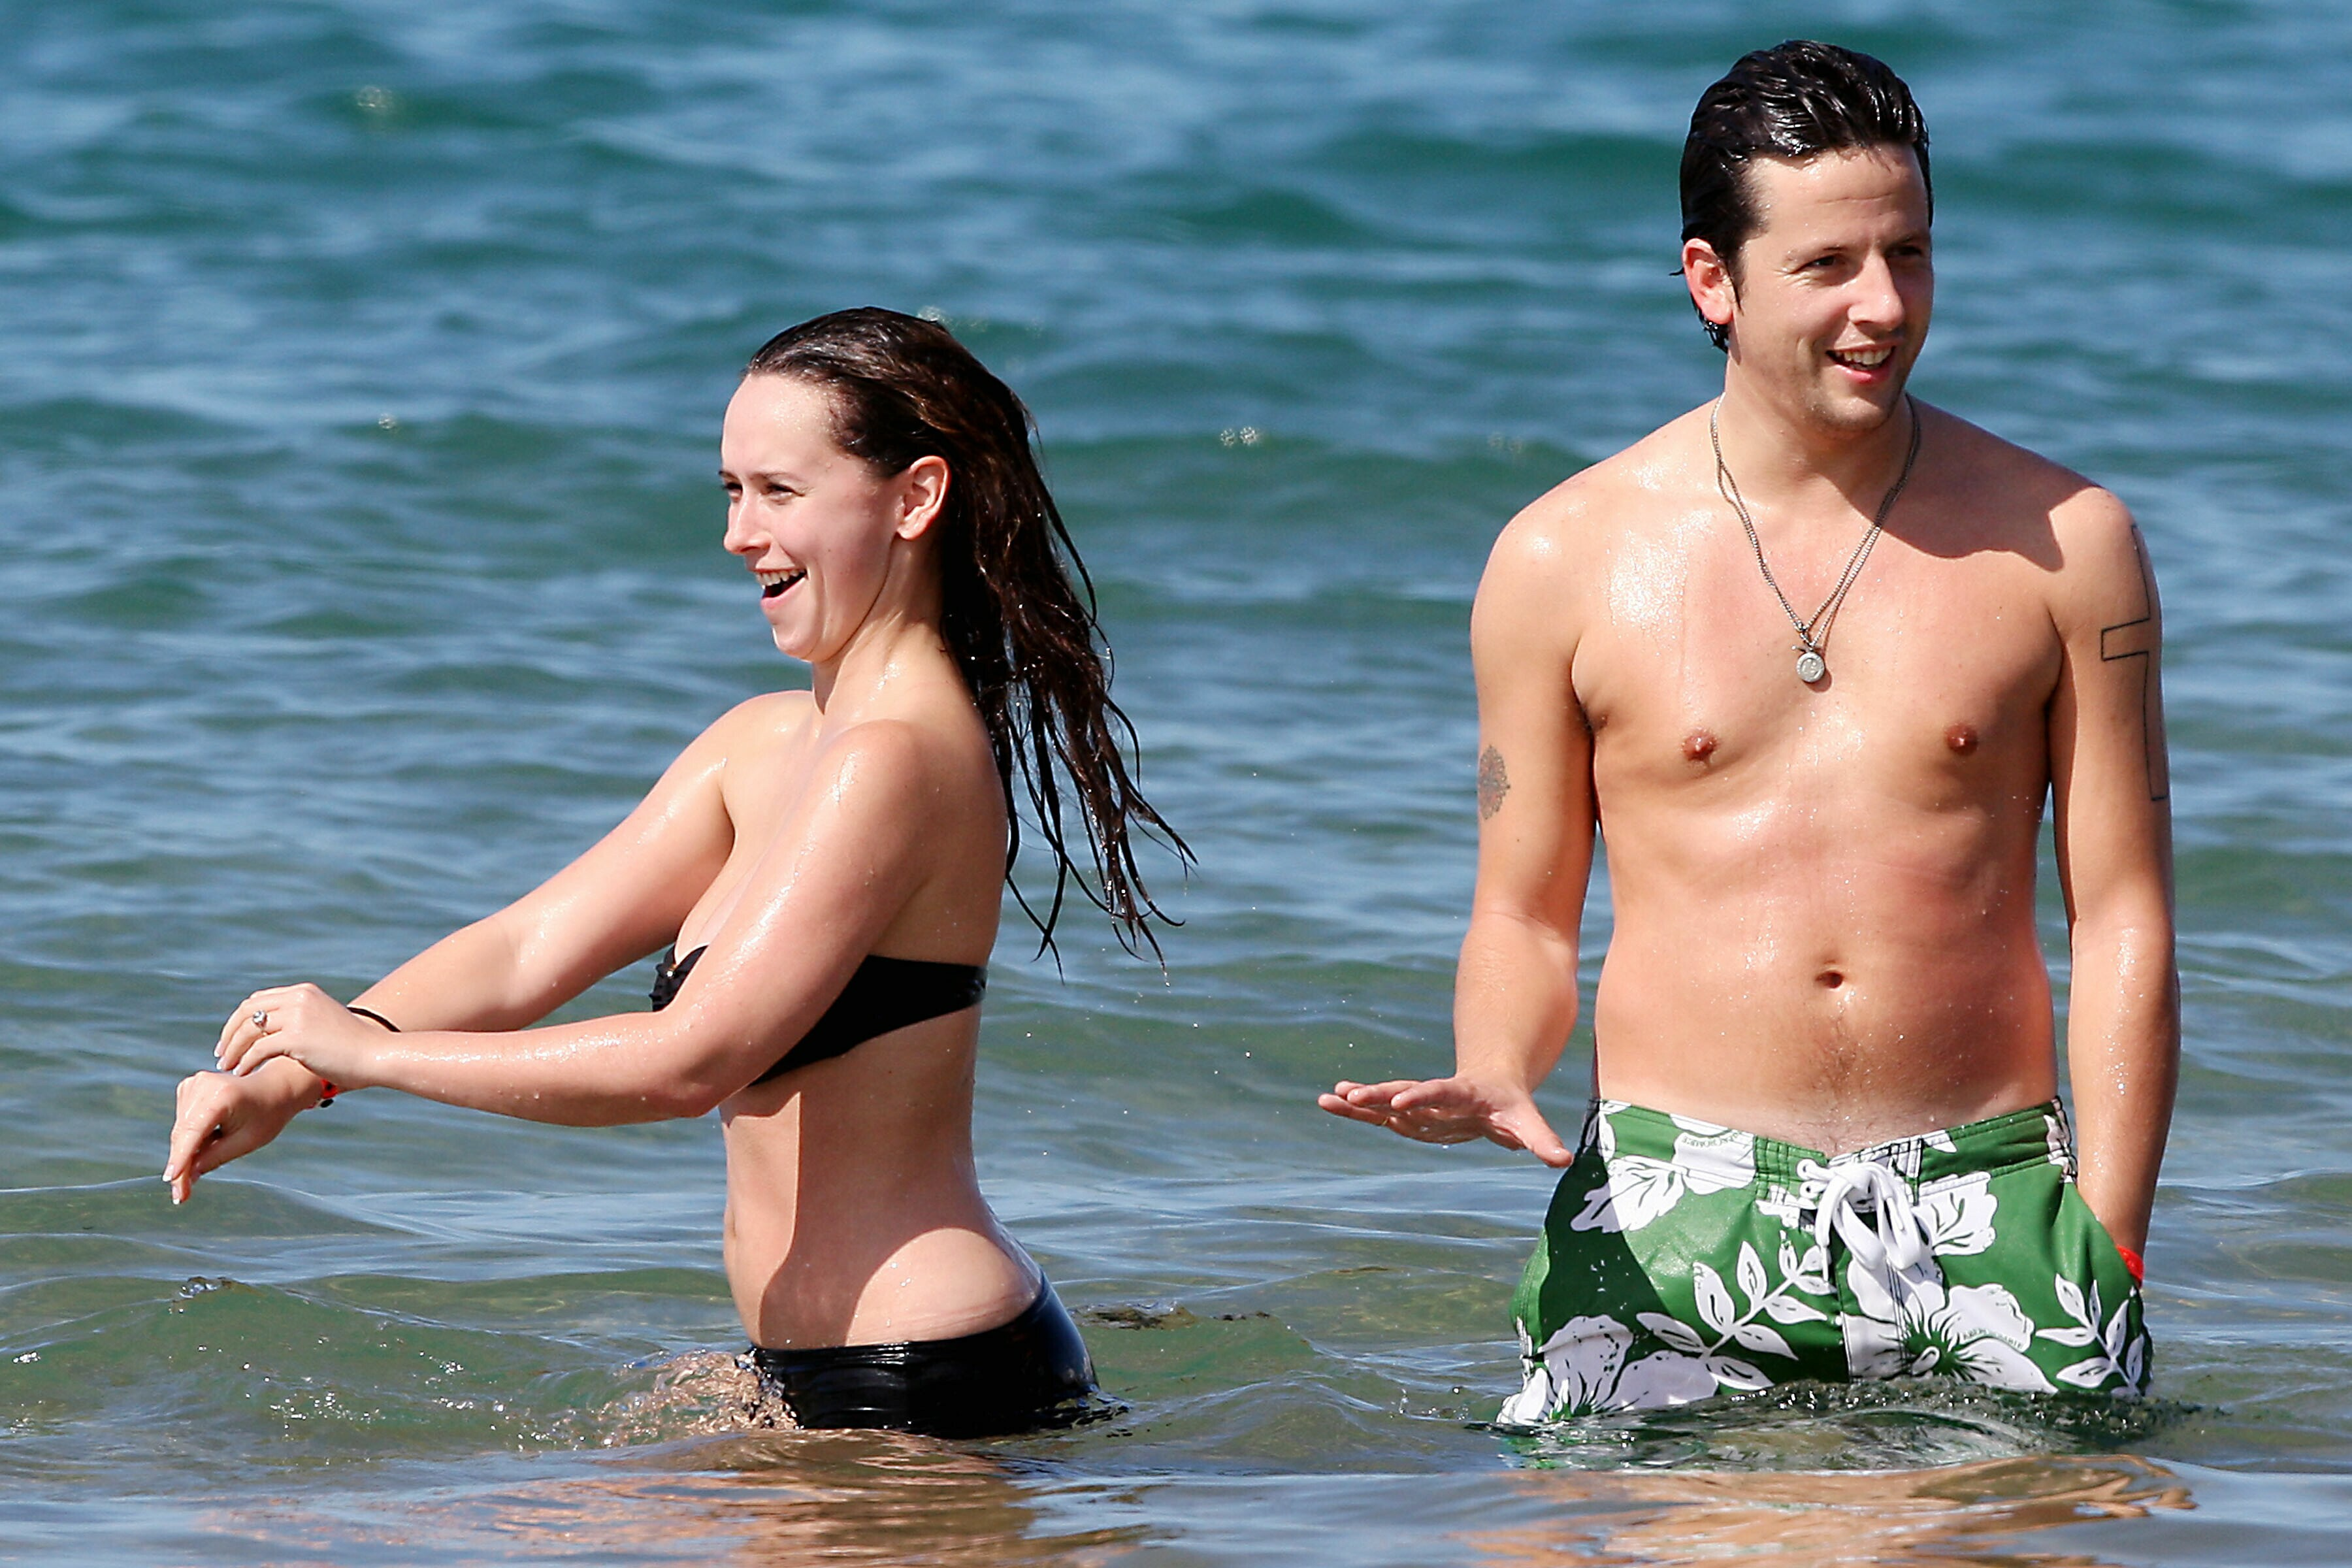 74590_celeb-city.eu_Jennifer_Love_Hewitt_at_beach_11_122_122_381lo.jpg